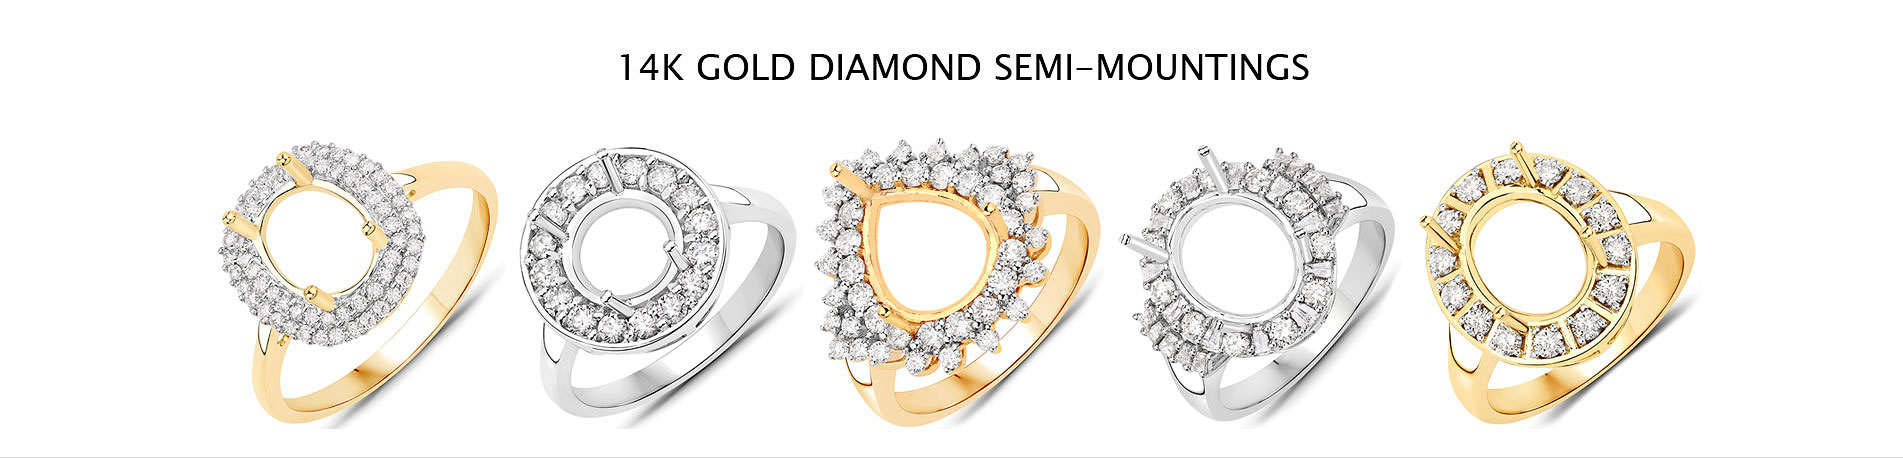 14K Gold Diamond Semi-mountings